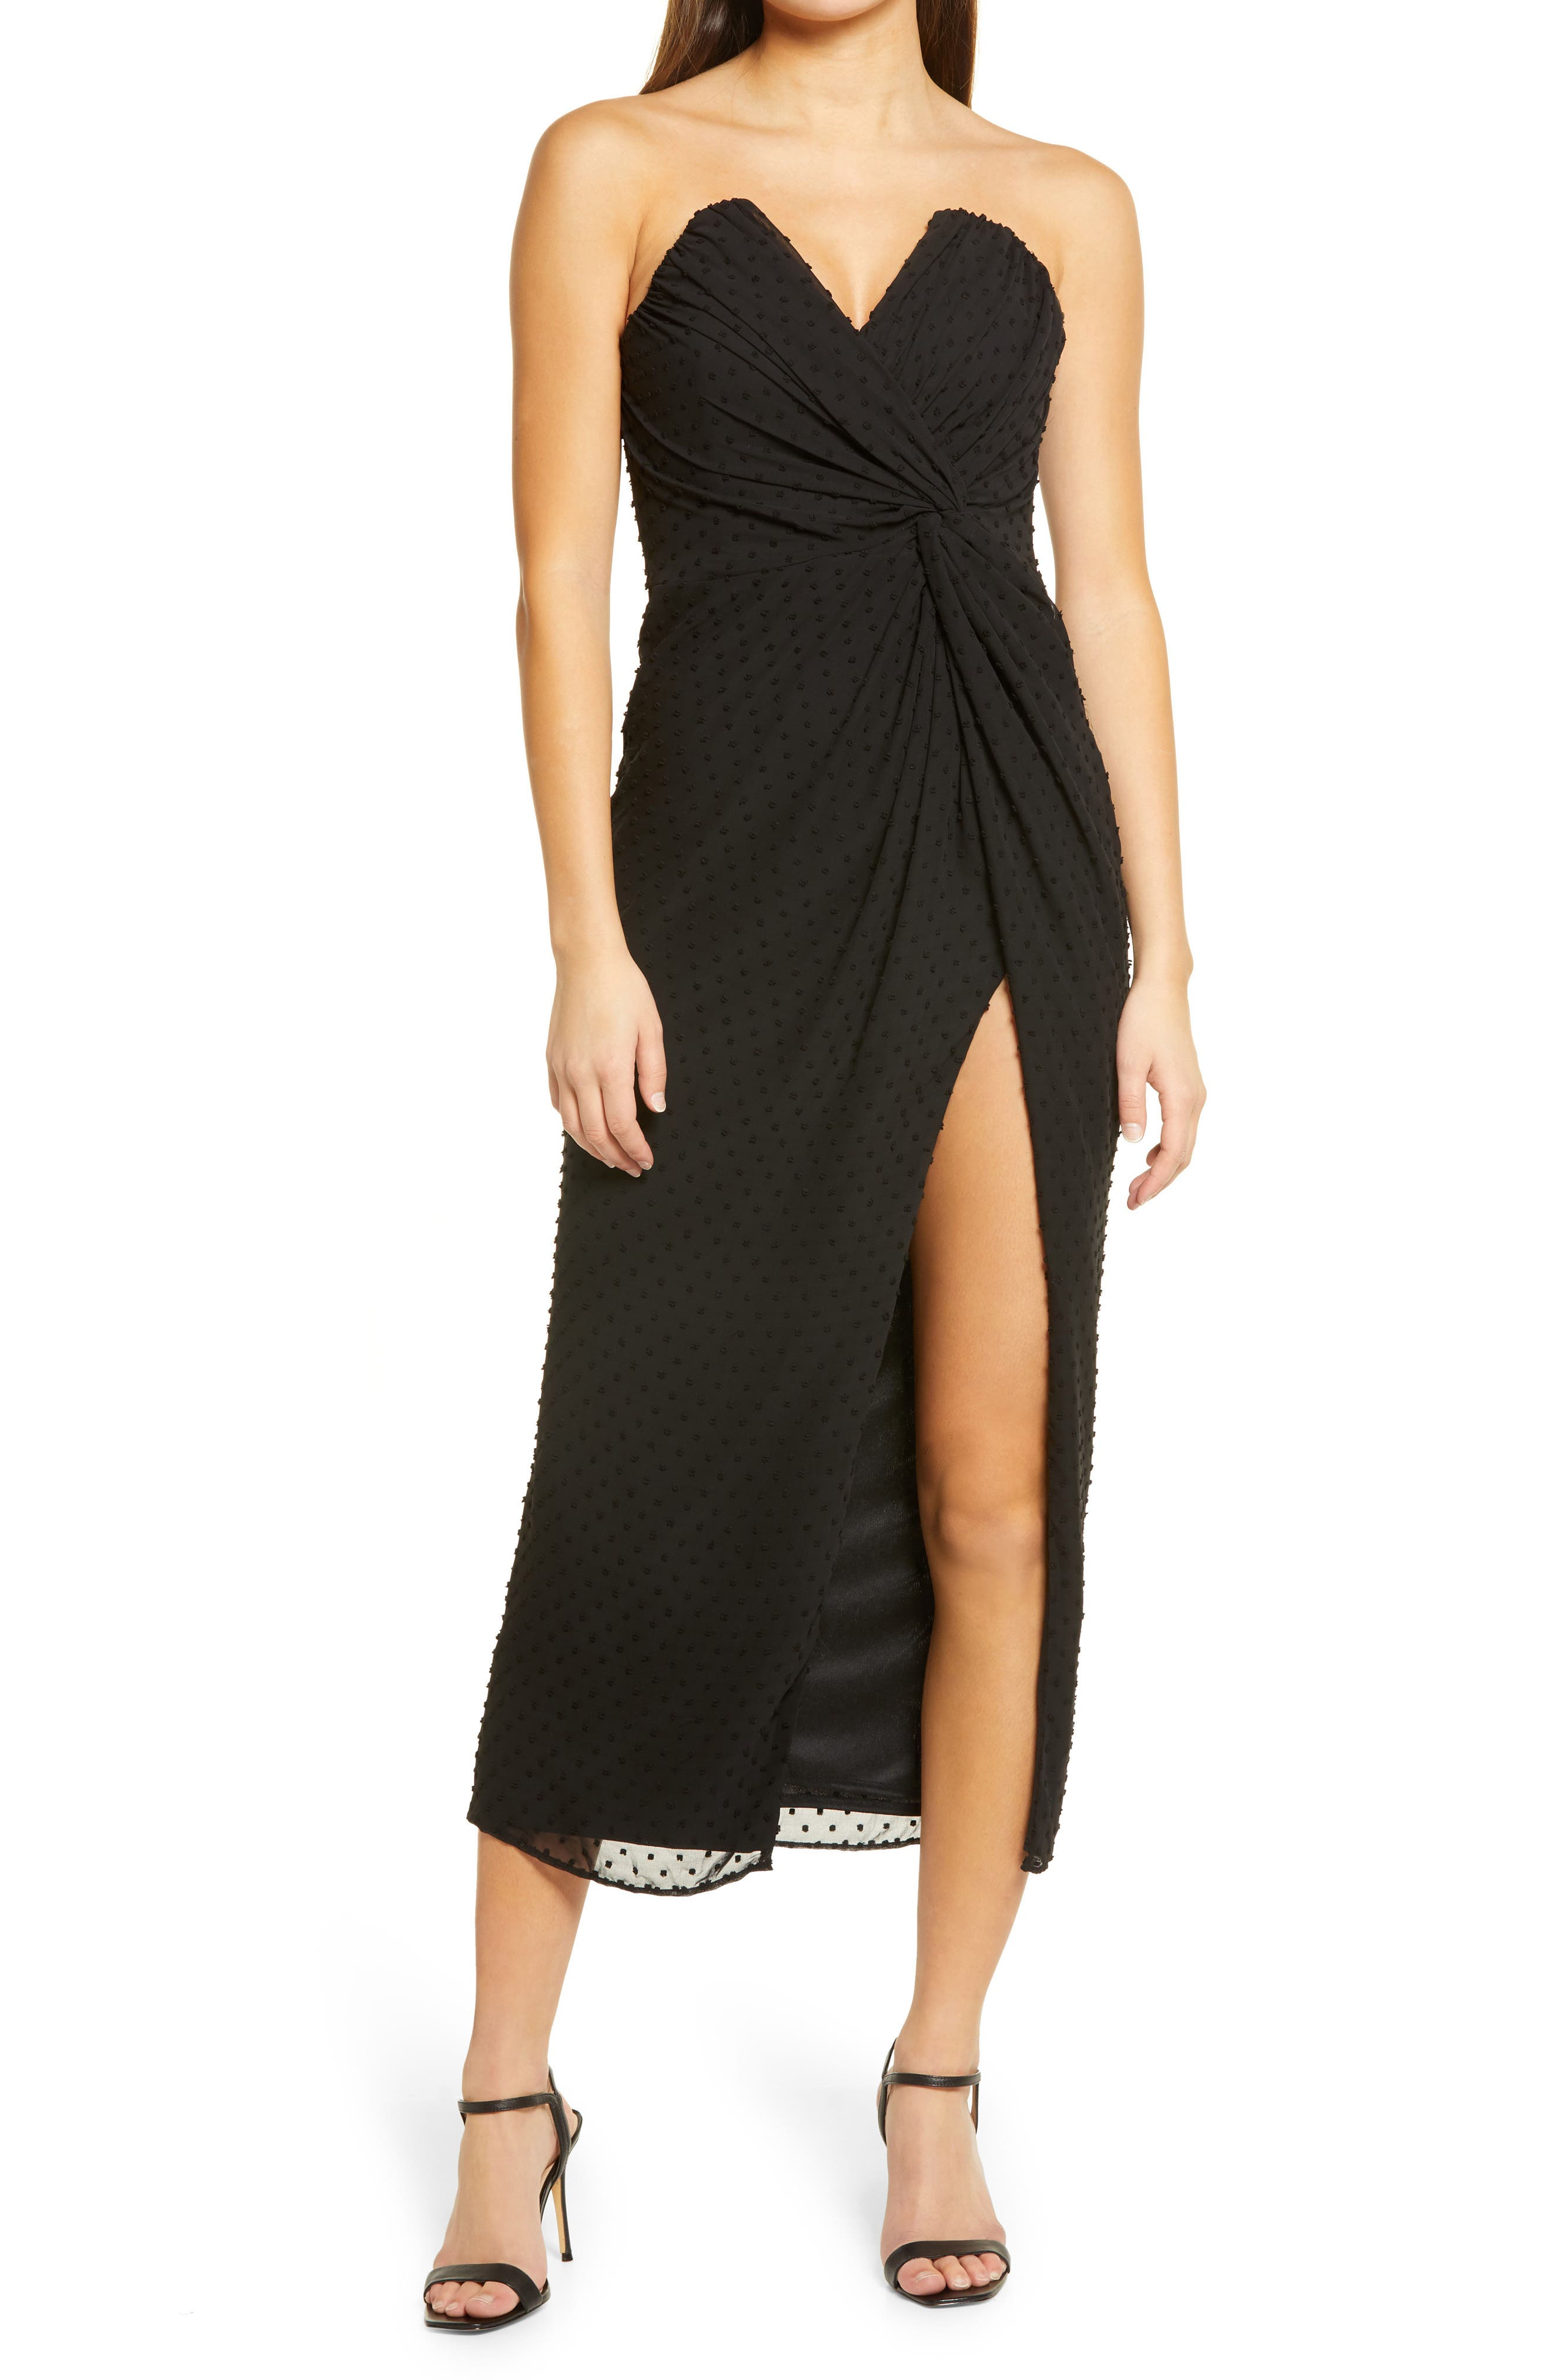 Come On Home Clip Dot Strapless Dress